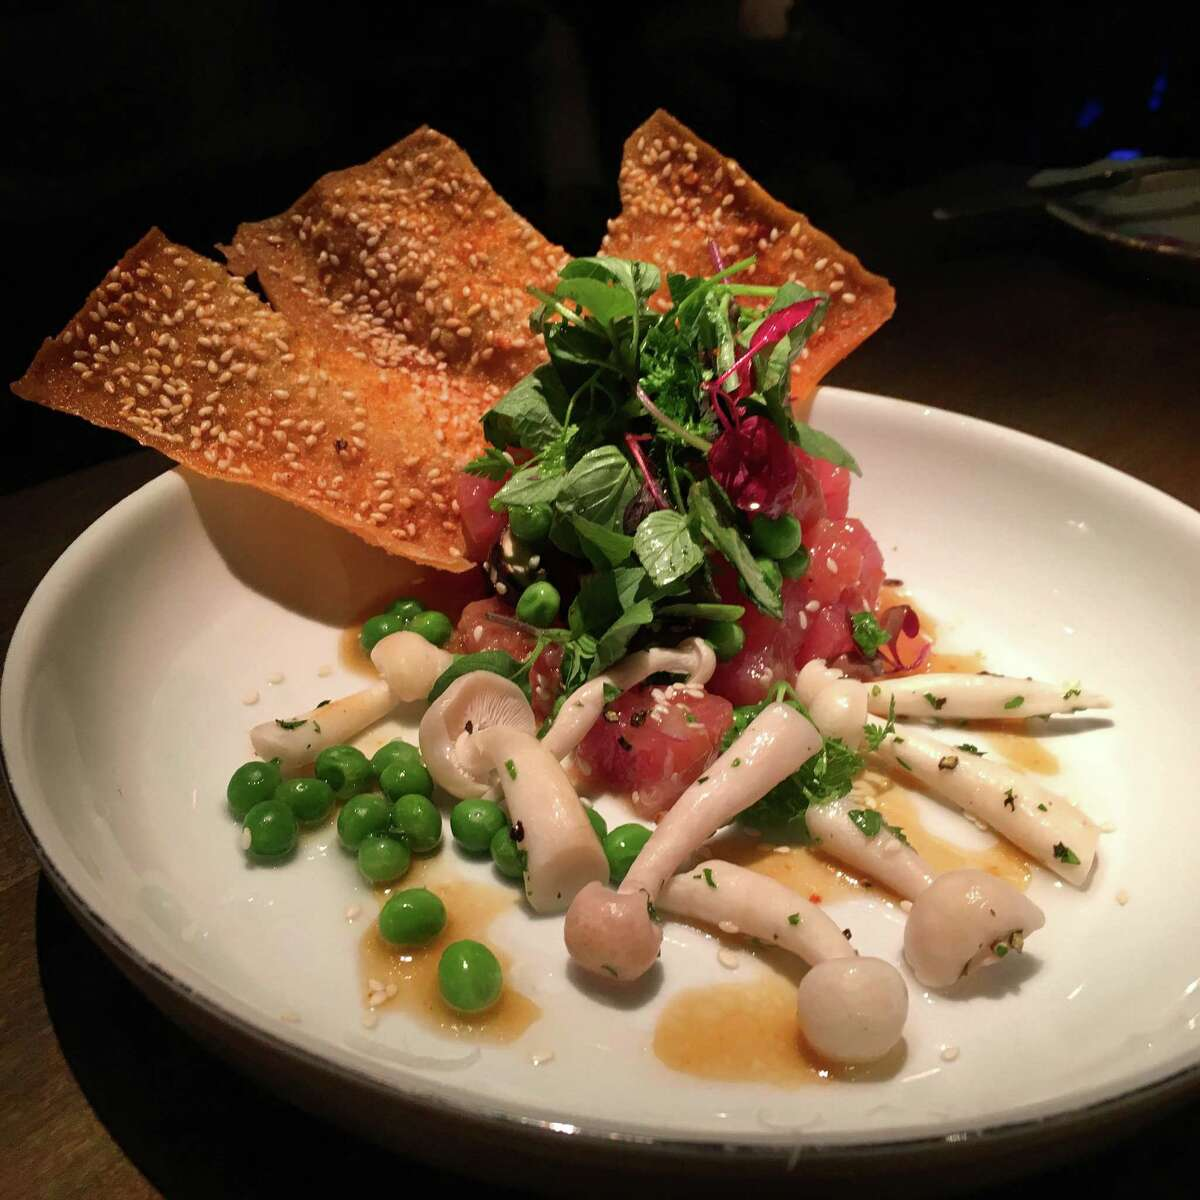 Tuna poke with Korean lemon tea and soy dressing, pickled enoki, spring peas and anise greens at Brasserie 1895